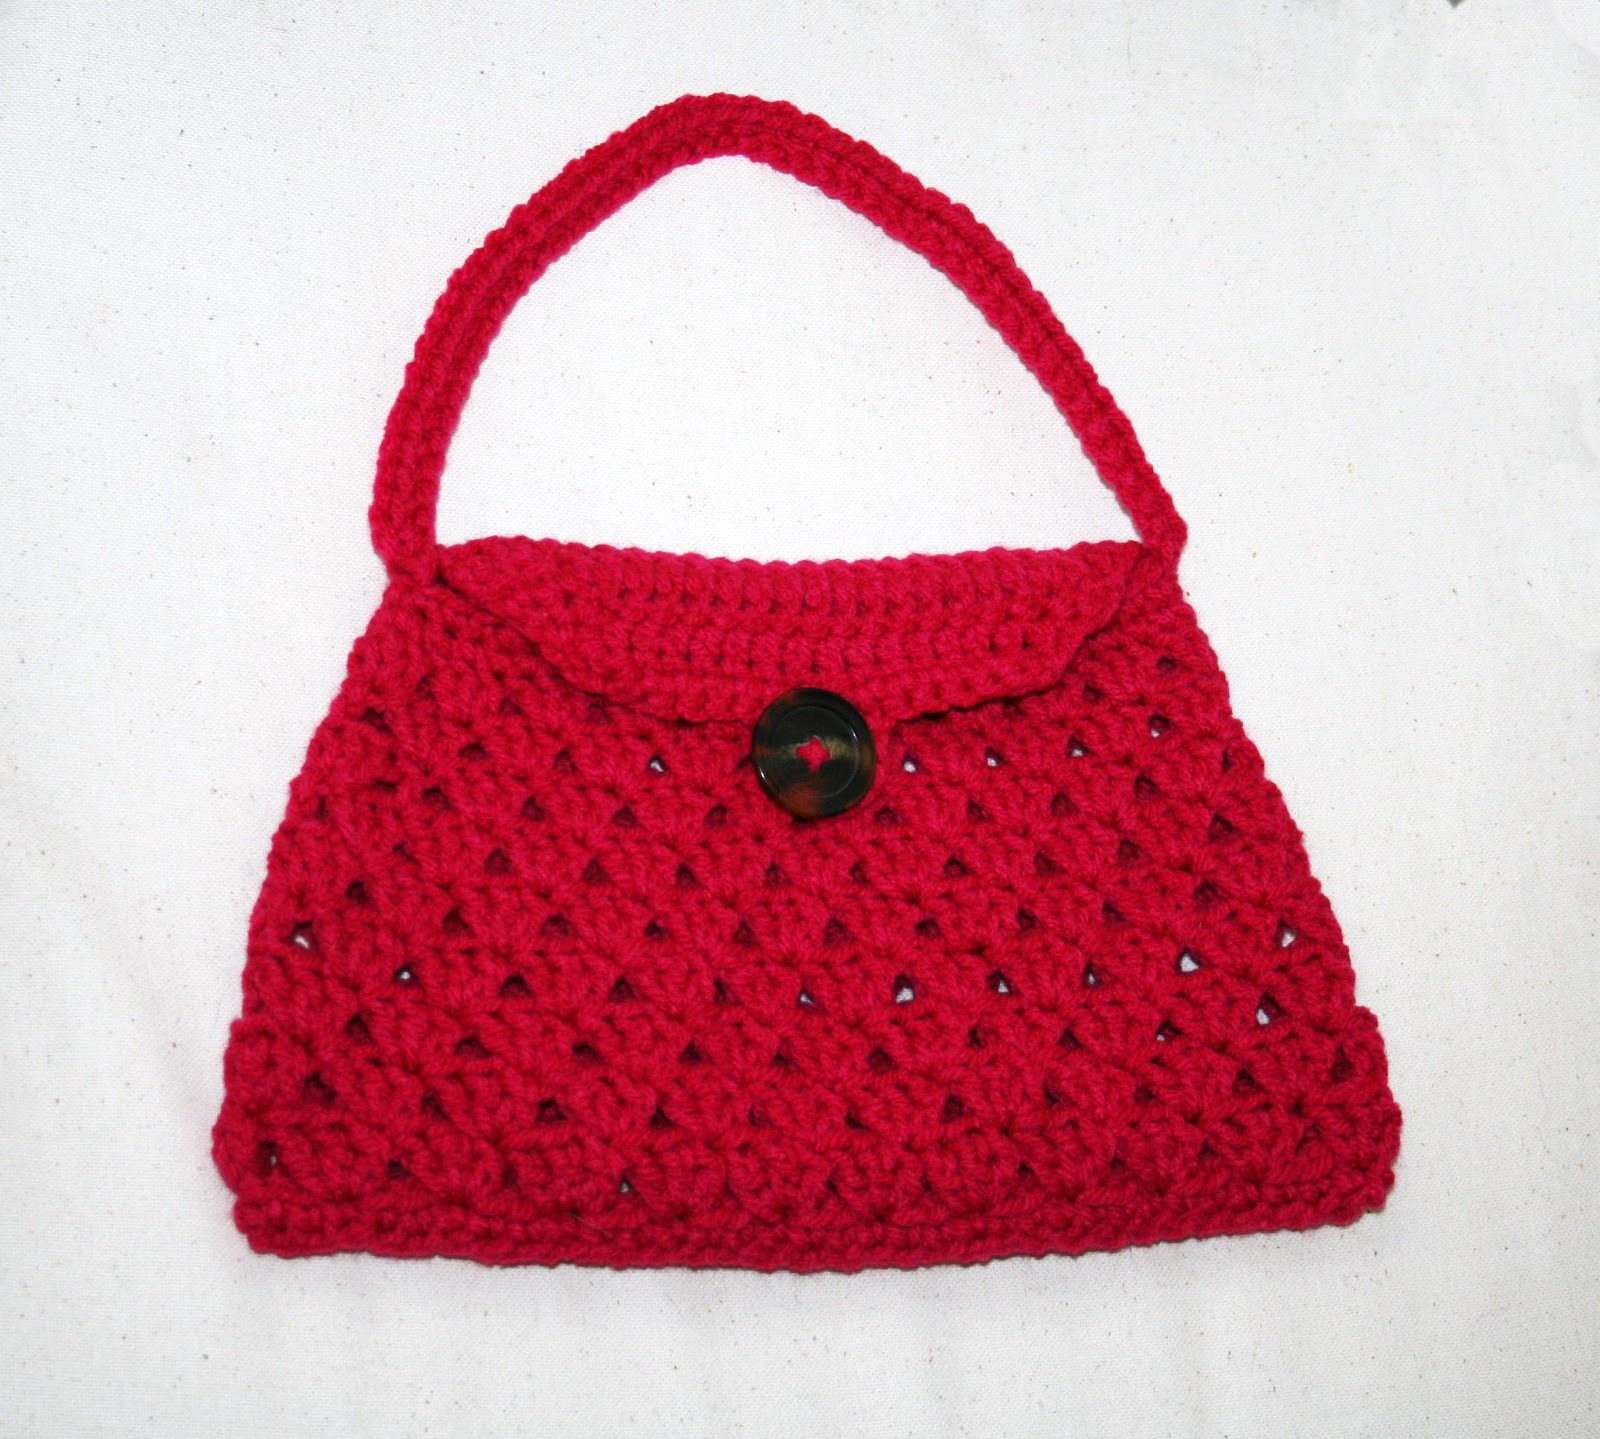 Crochet Purse Pattern Fresh Tampa Bay Crochet Free Crochet Pattern Stylish Crochet Of Adorable 44 Photos Crochet Purse Pattern